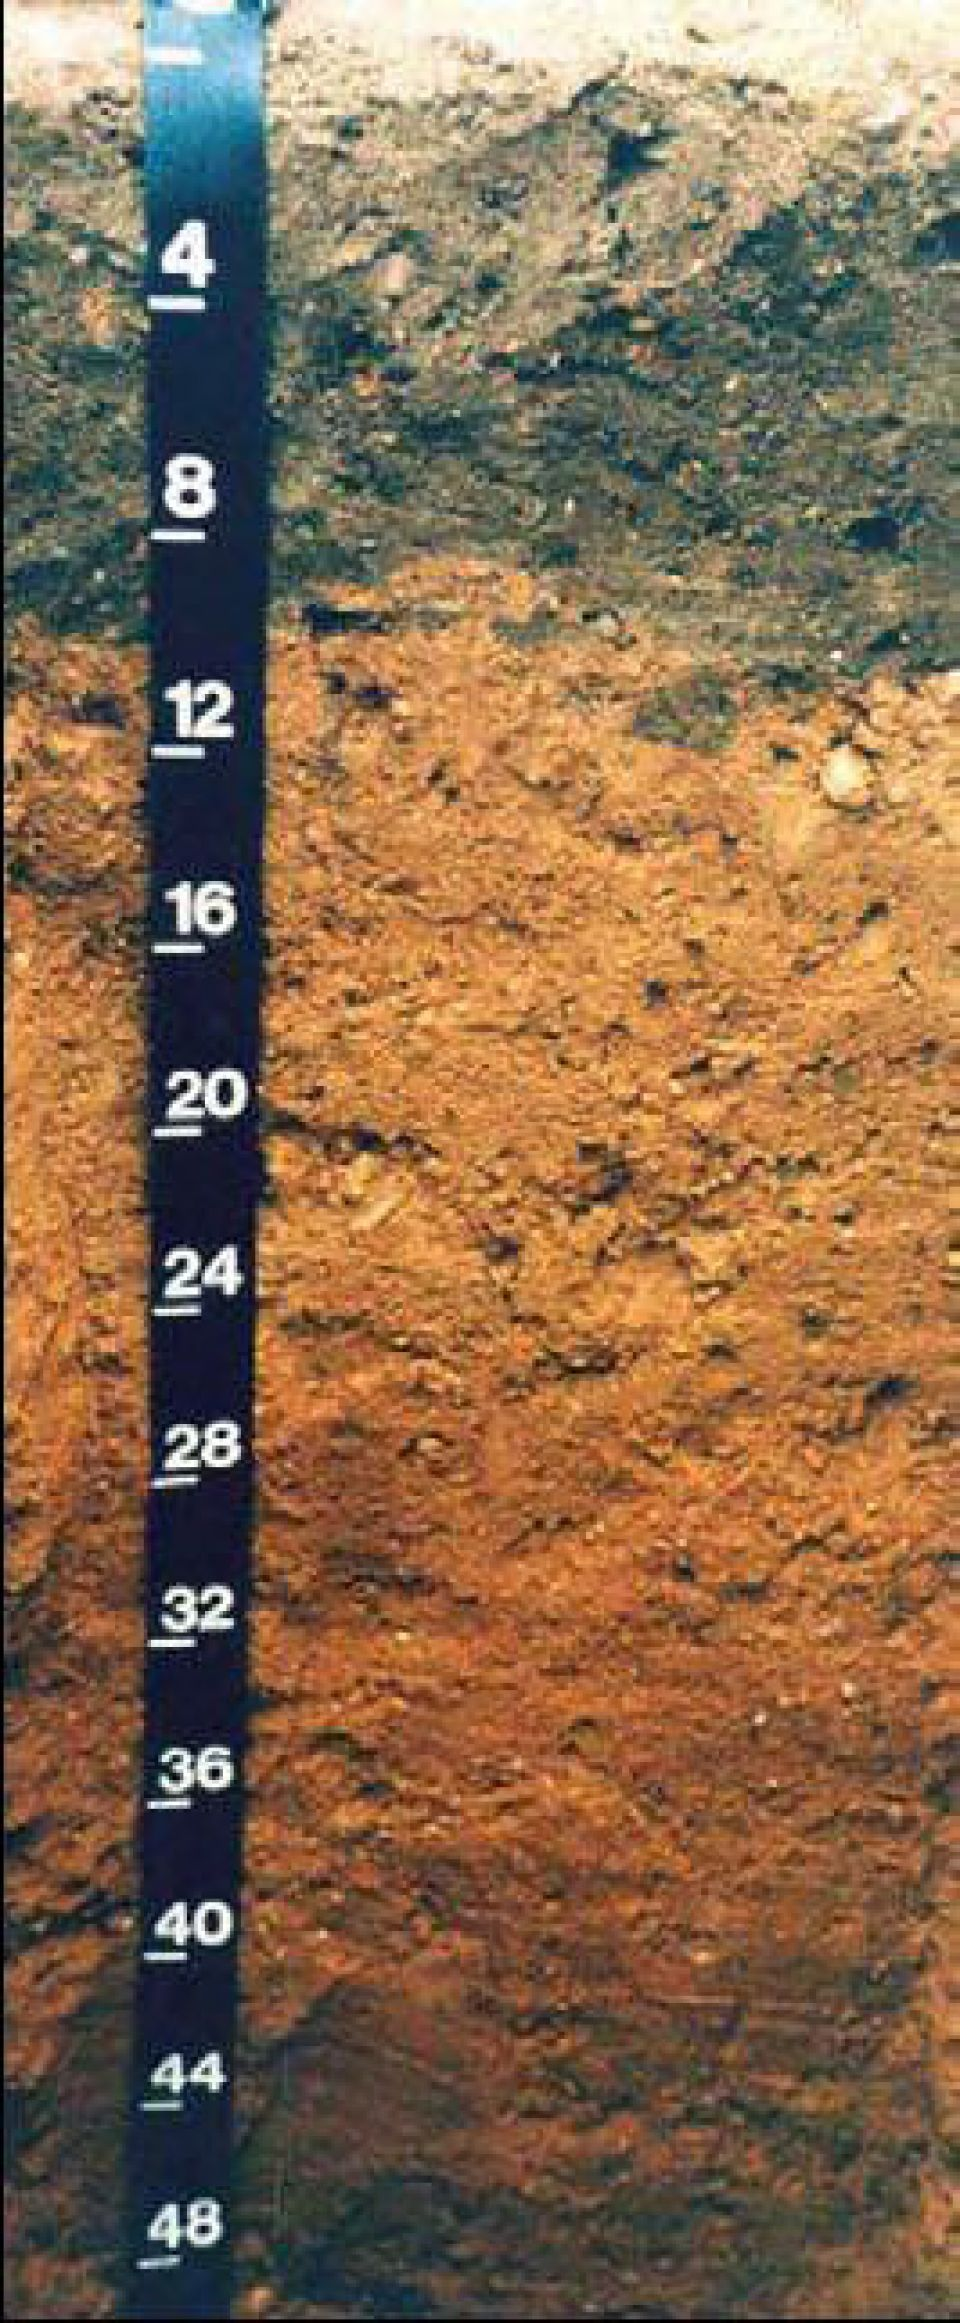 Soil profiles new jersey downer american geosciences for American soil